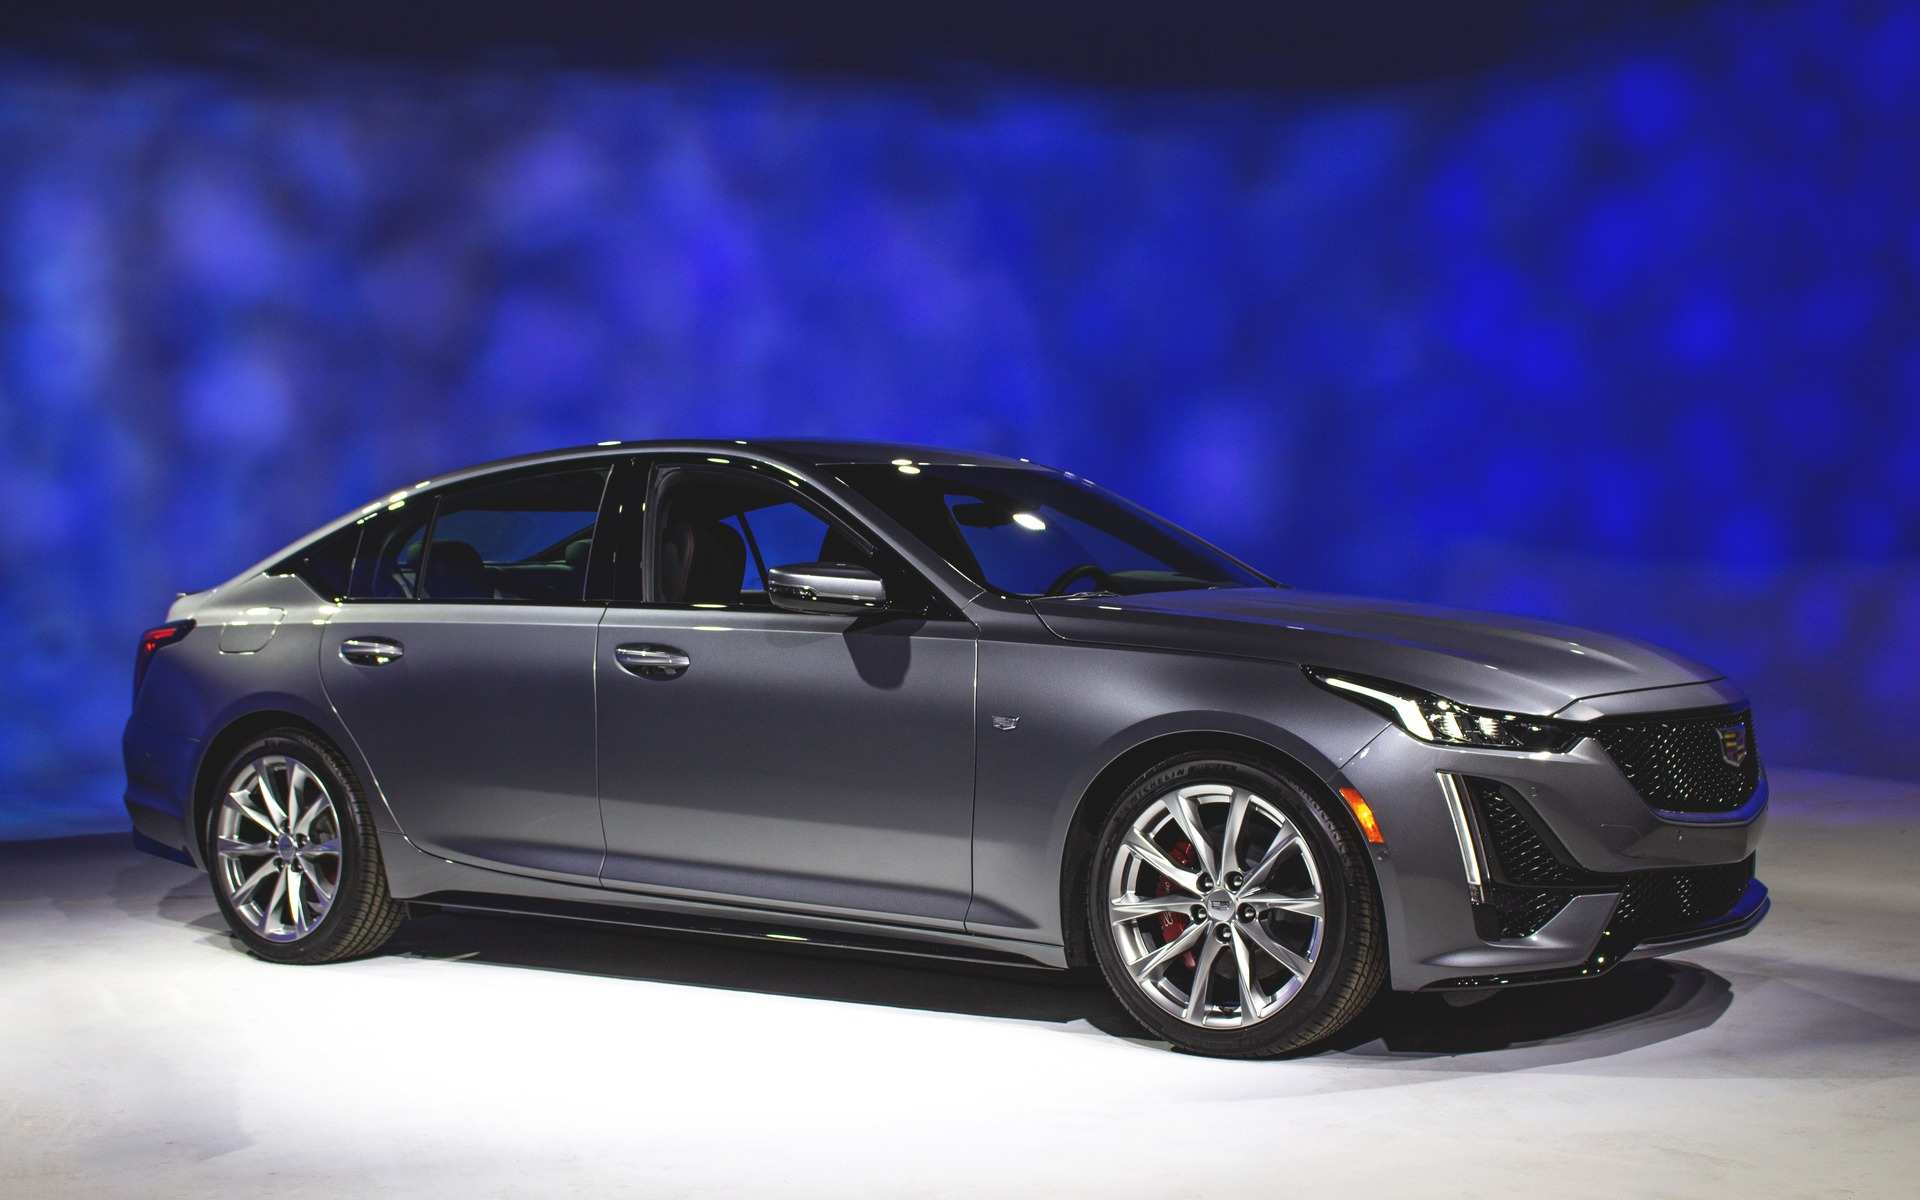 28 New Pictures Of 2020 Cadillac Ct5 Redesign and Review